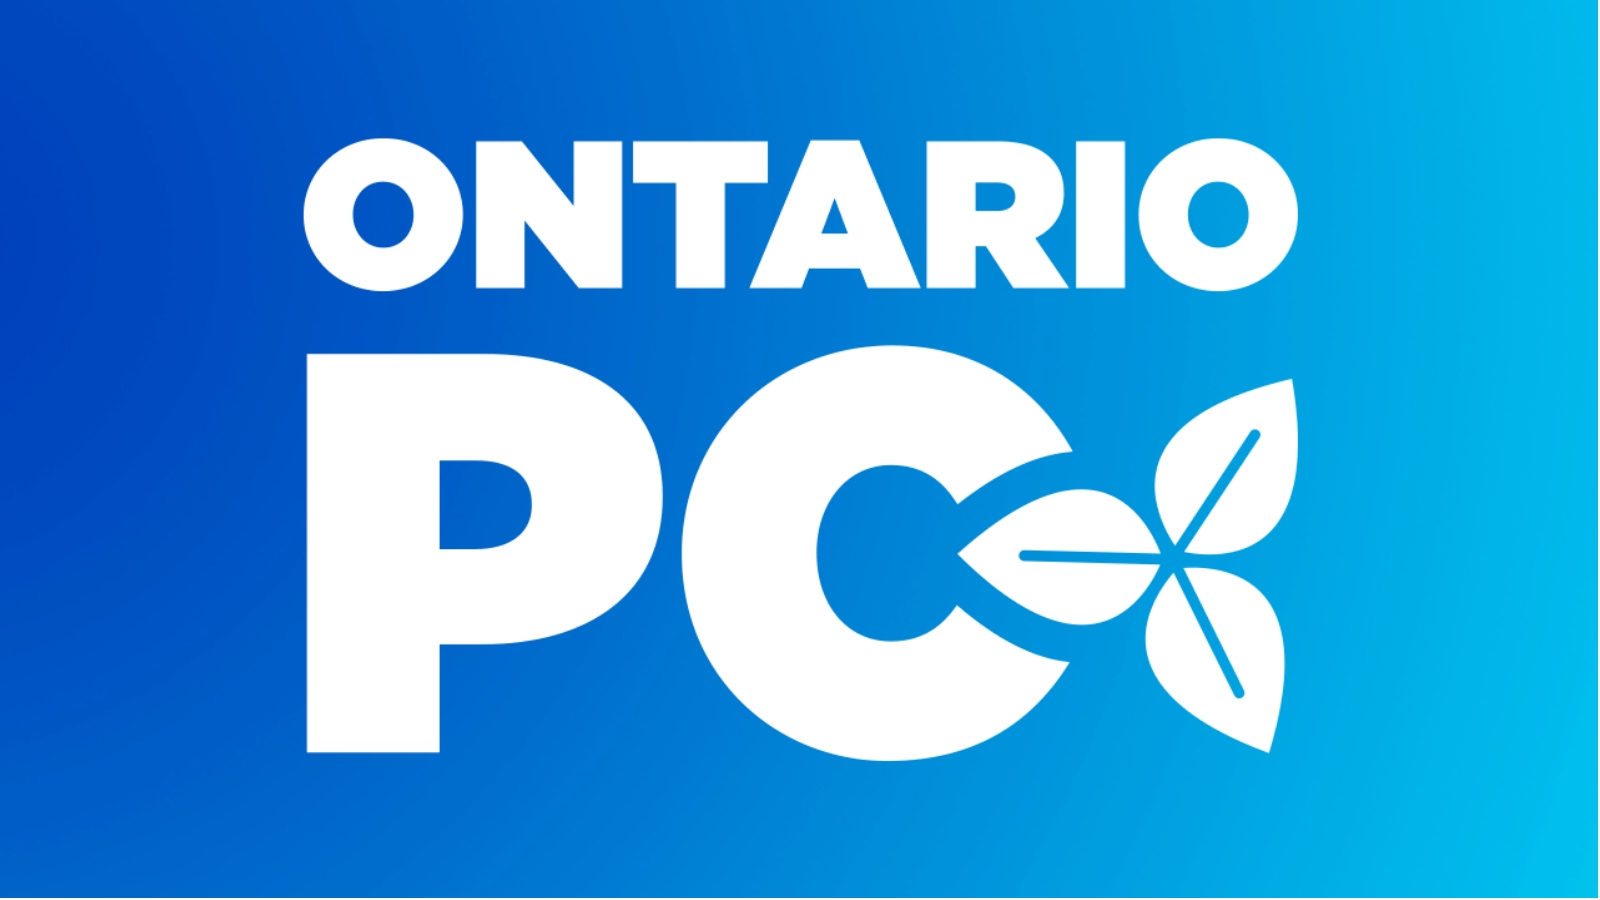 Statement by the Ontario PC Leader Patrick Brown recognizing the first day of Ramadan